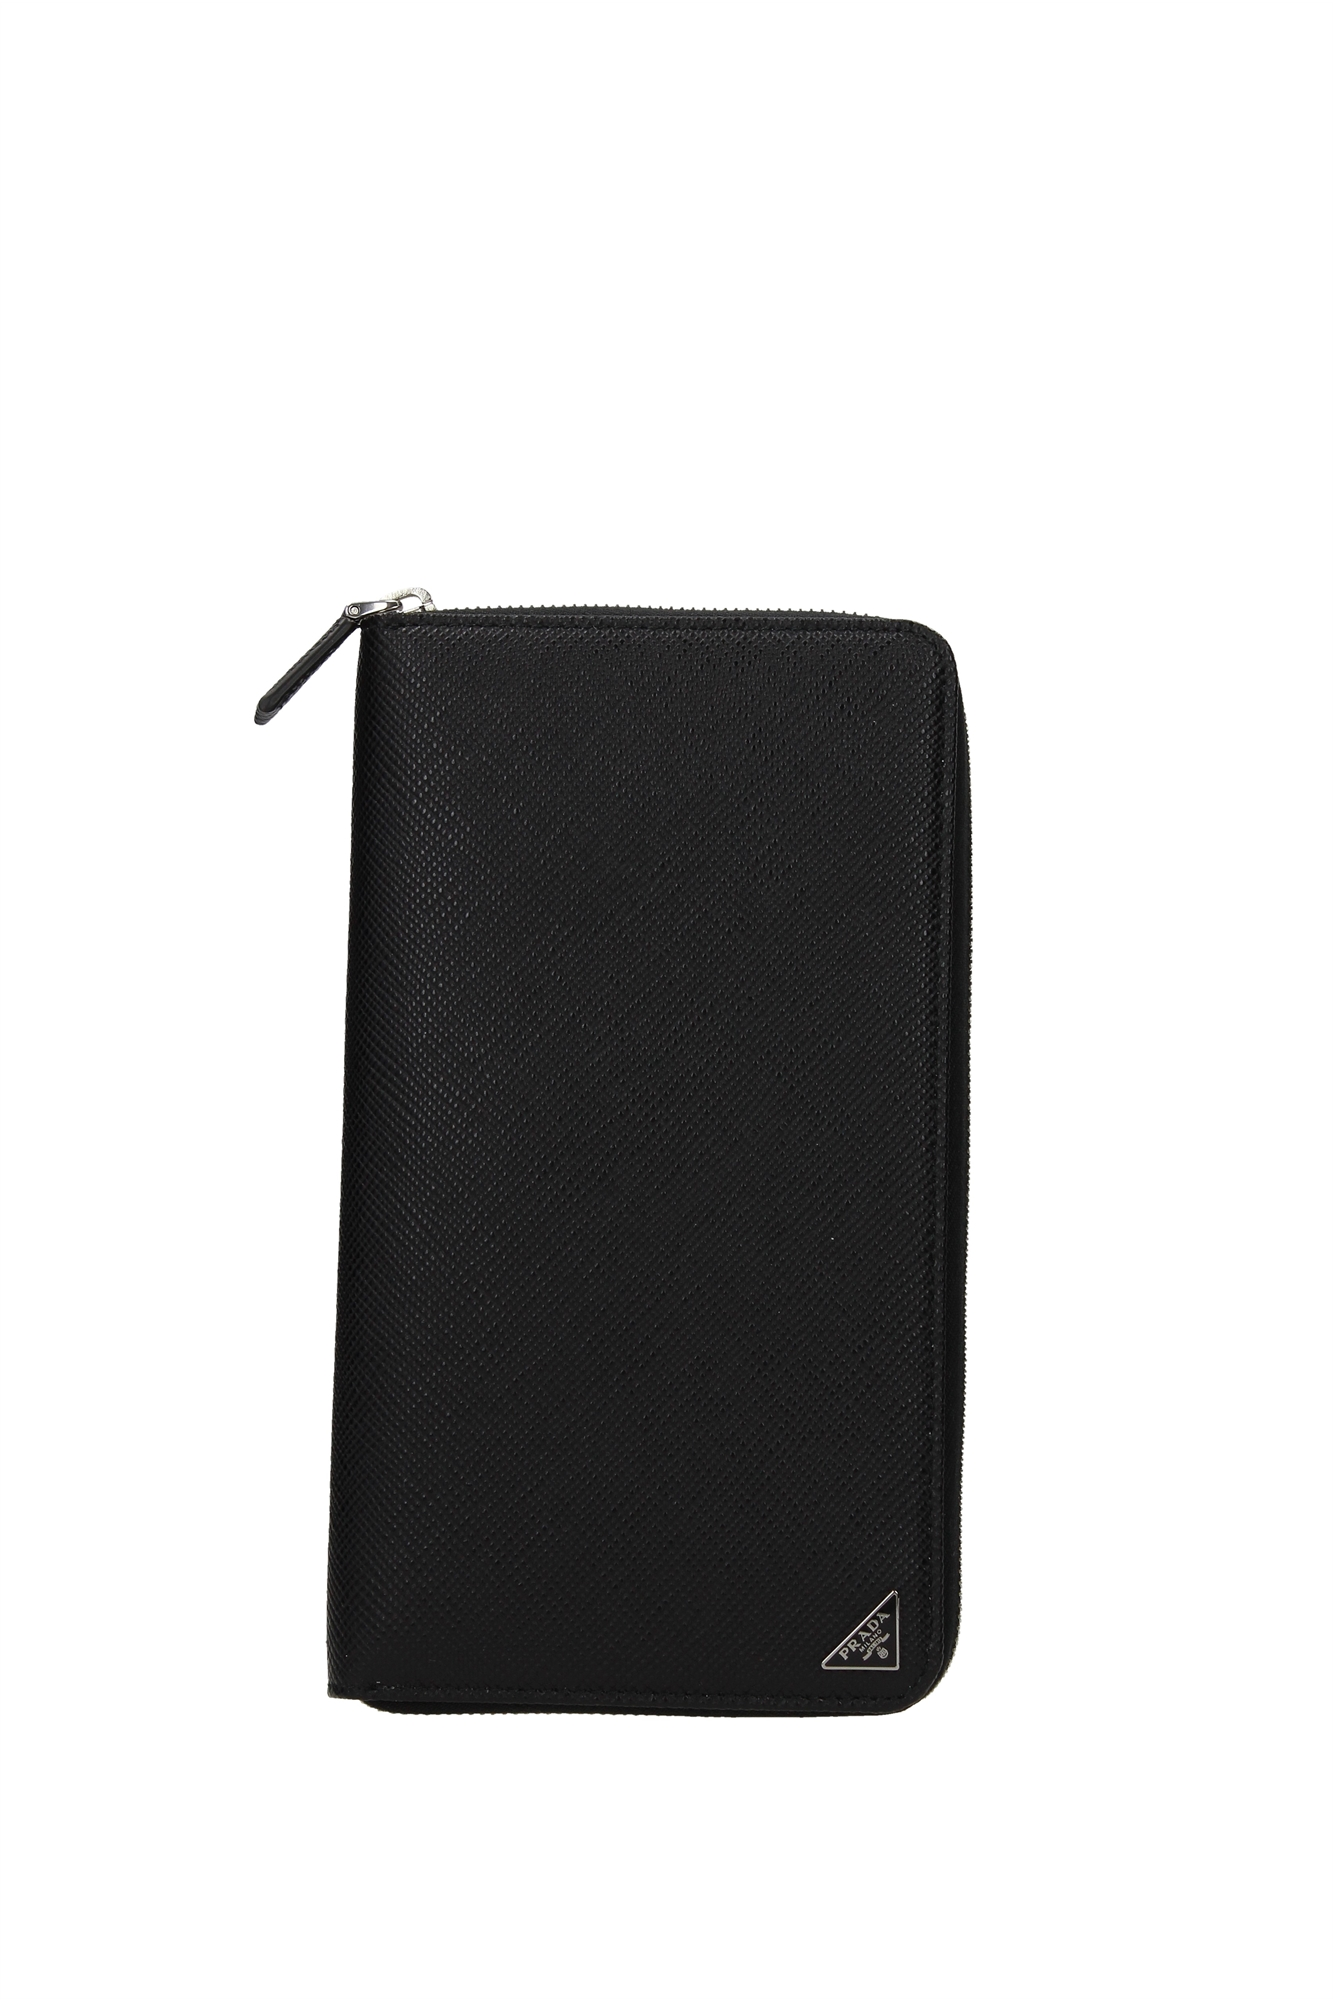 Snap Prada Mens Wallet Black eBay photos on Pinterest f60e028038